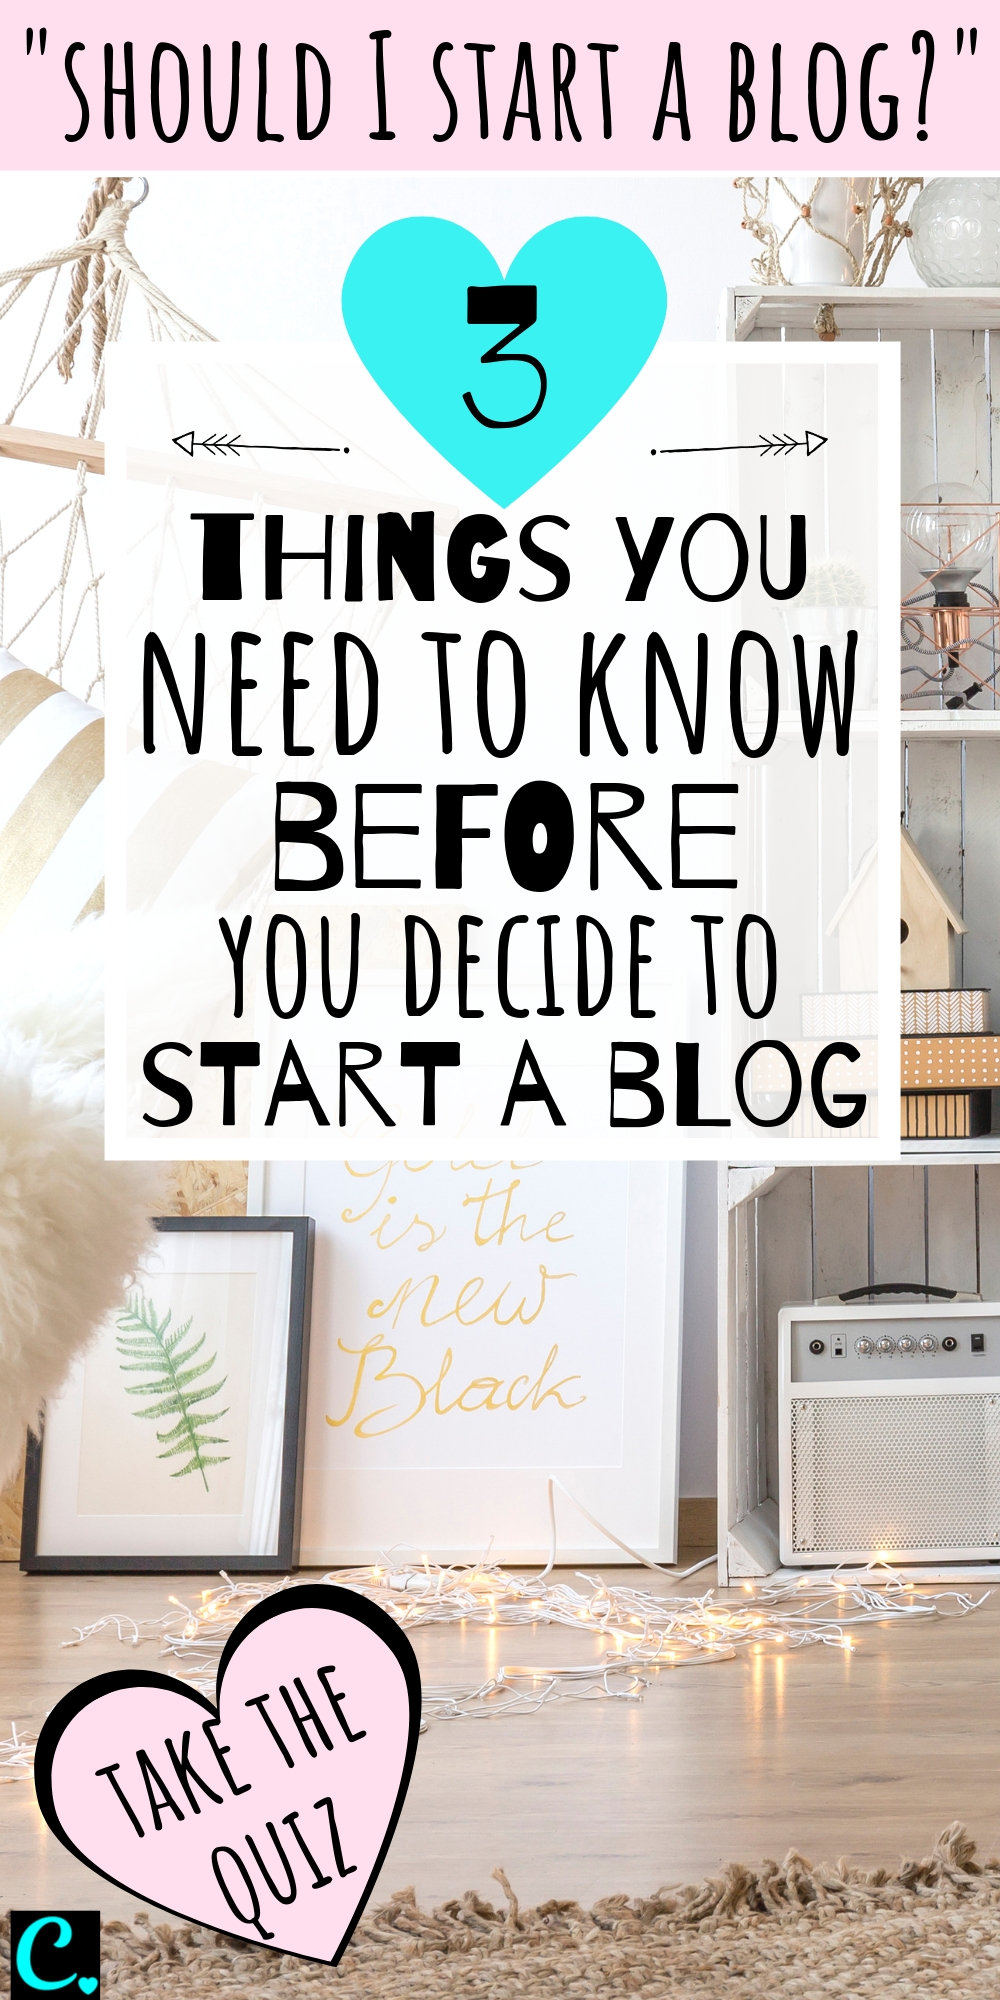 "If you're asking ""should I start a Blog?"" then you need to know these top 3 things before you decide to become a blogger! You can also take the fun blogging quiz to find out if you have what it takes to start, grow & maintain a successful blog! #startablog #captivatingcrazy"